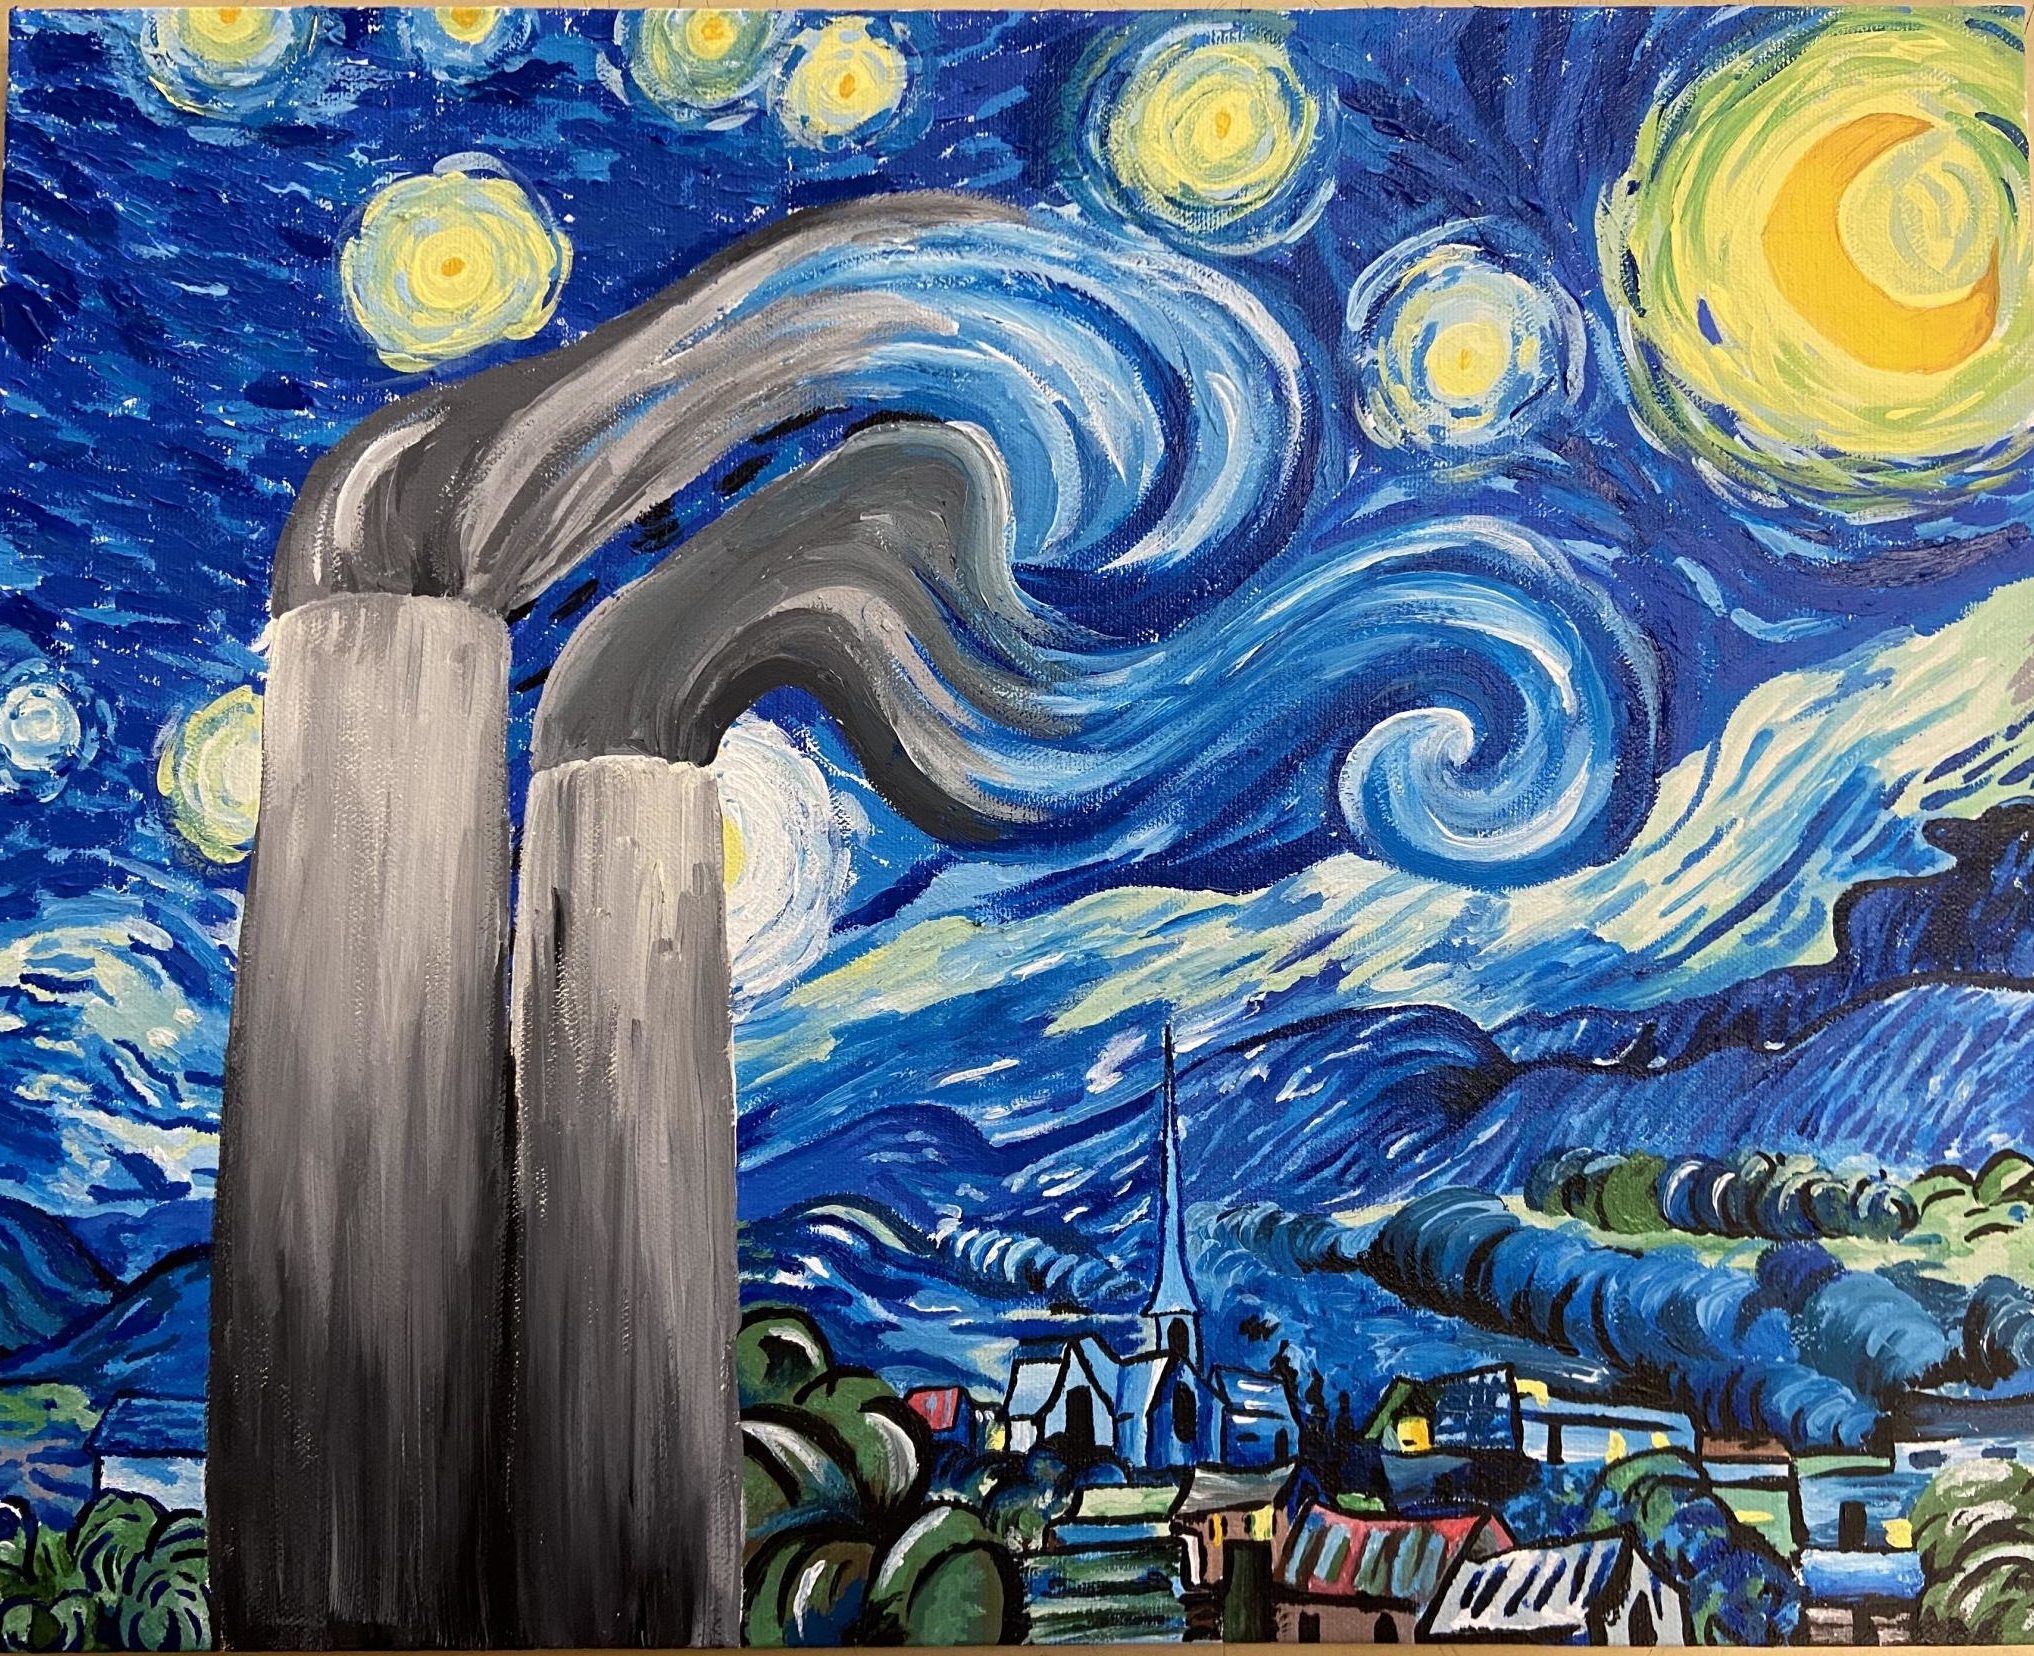 Starry Night In The 21st Century by Paige Trundou